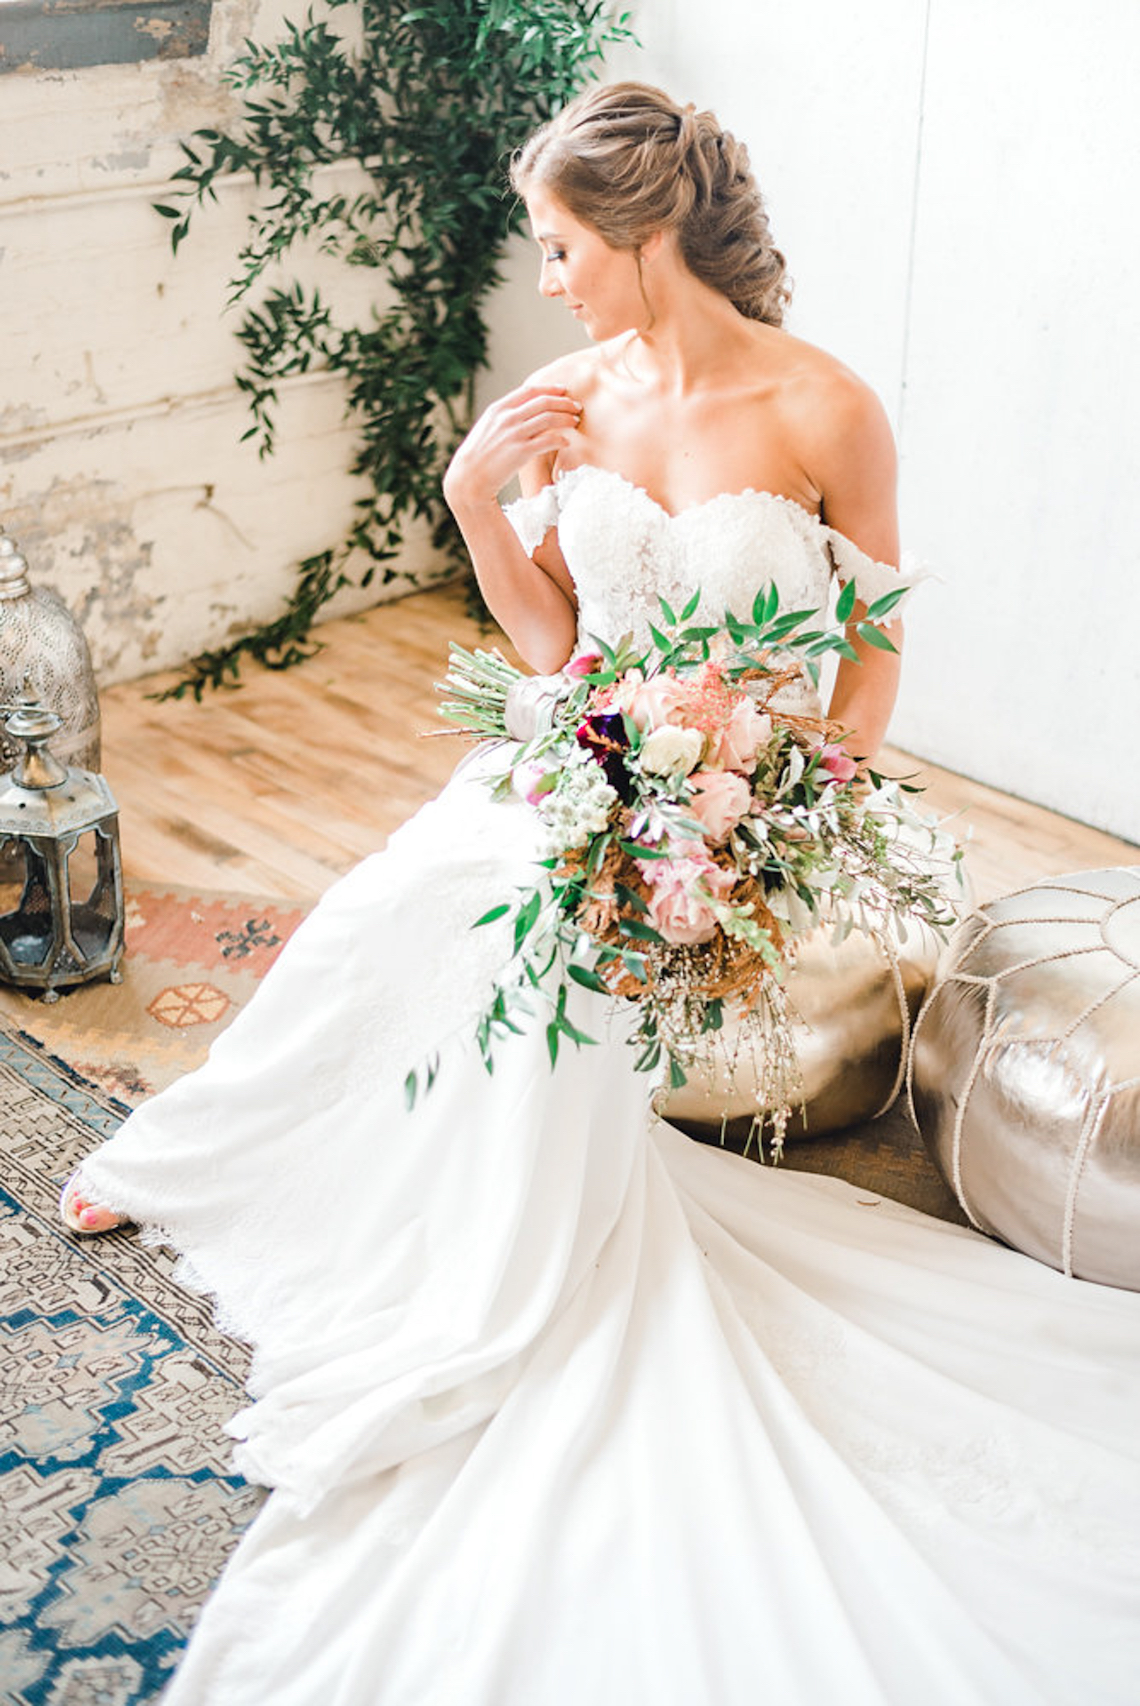 Moroccan Styled Loft Wedding Inspiration – Chapel Lane Photography 37